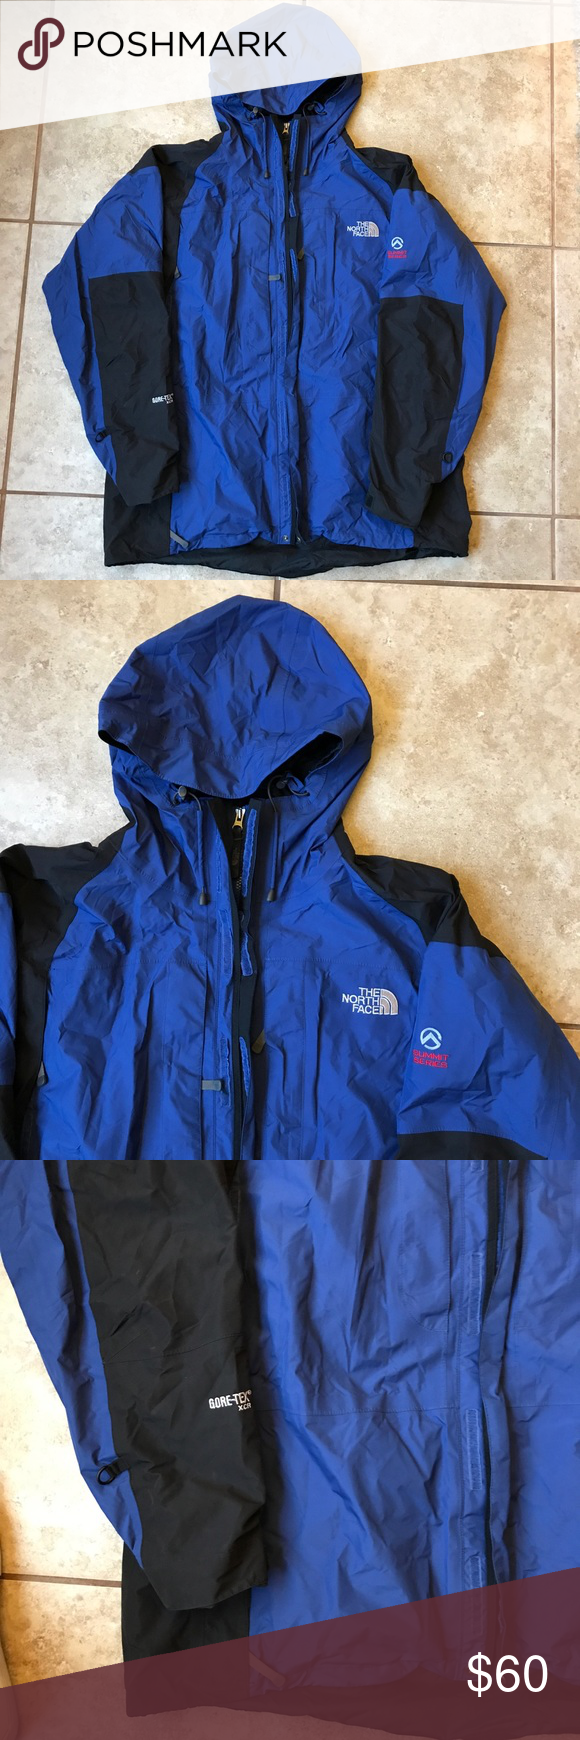 The North Face Blue Summit Series Snow Jacket Snow Jackets Women Snow Jacket Blue Black Color [ 1740 x 580 Pixel ]